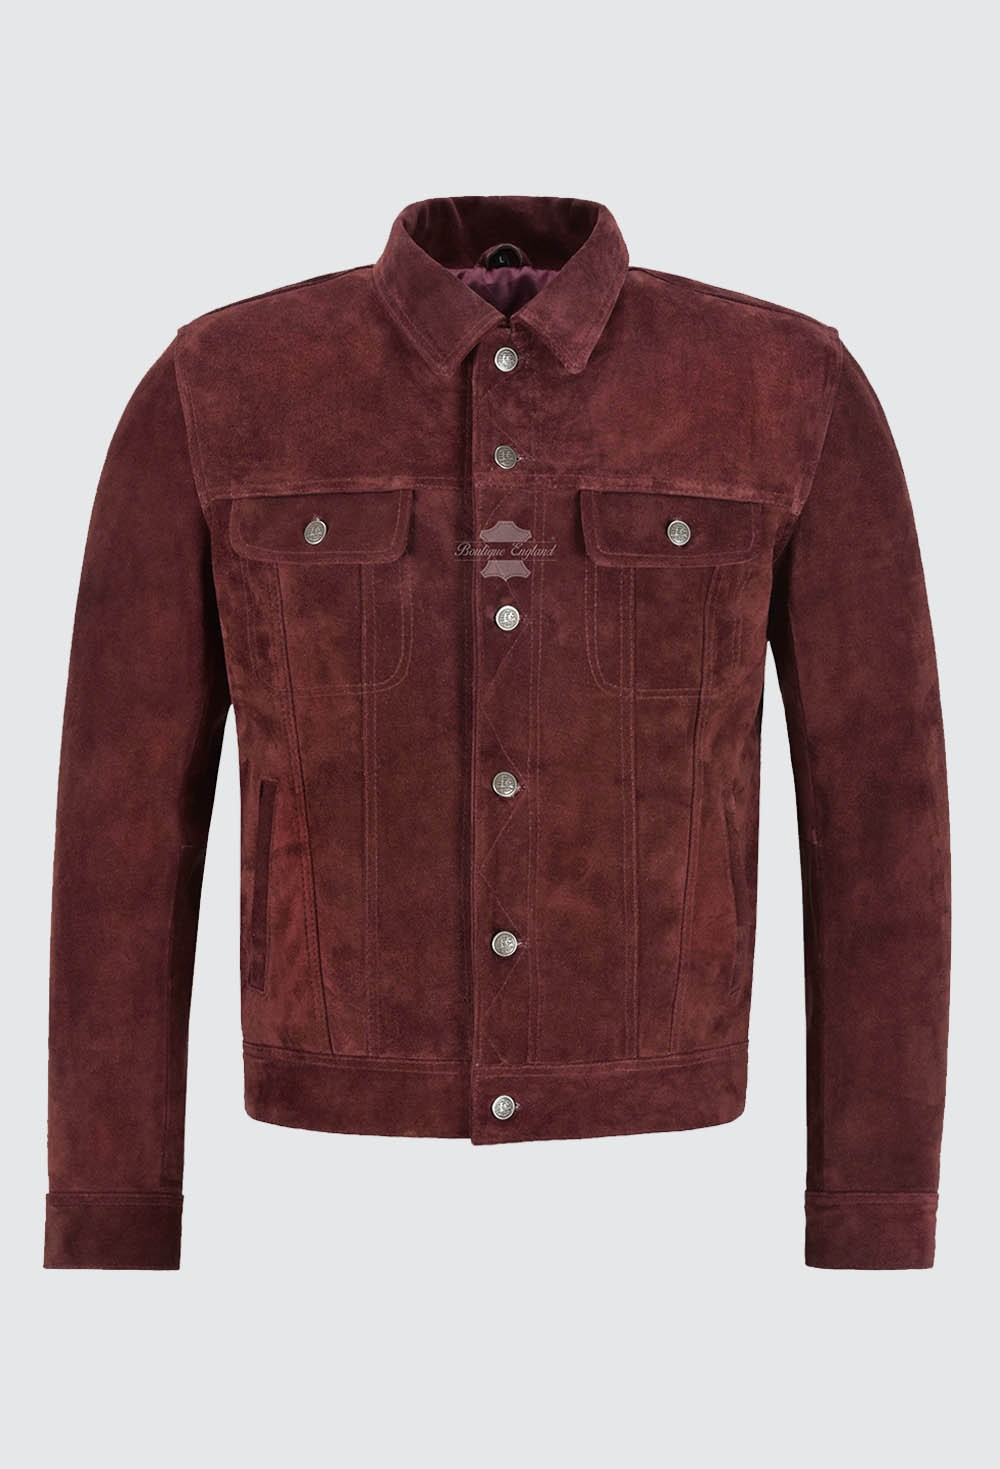 Men's Trucker Real Leather Jacket Cherry Suede Casual Fashion Biker Style 1280